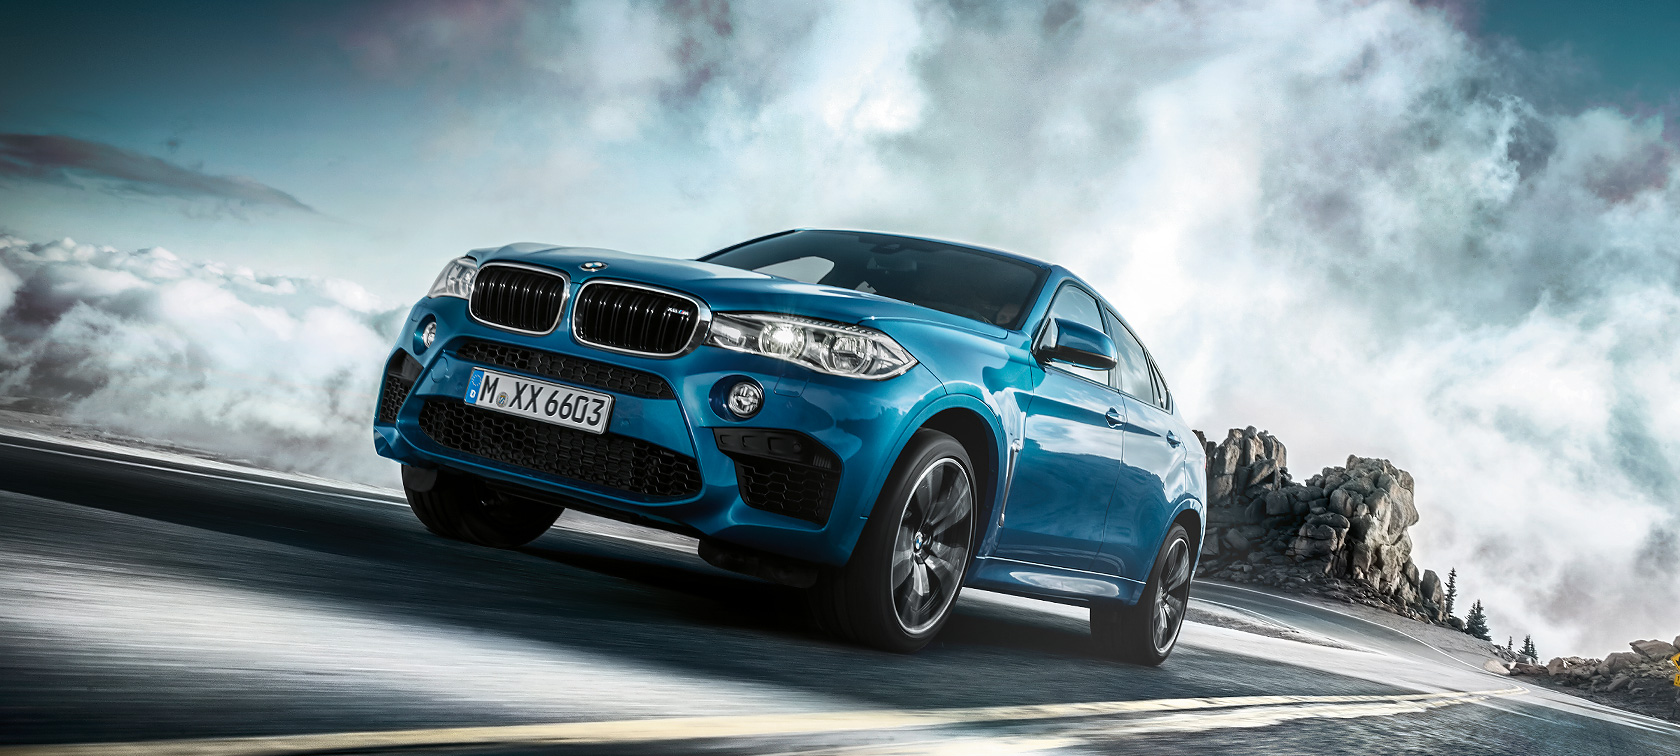 Driving dynamics & efficiency of the BMW X6 M